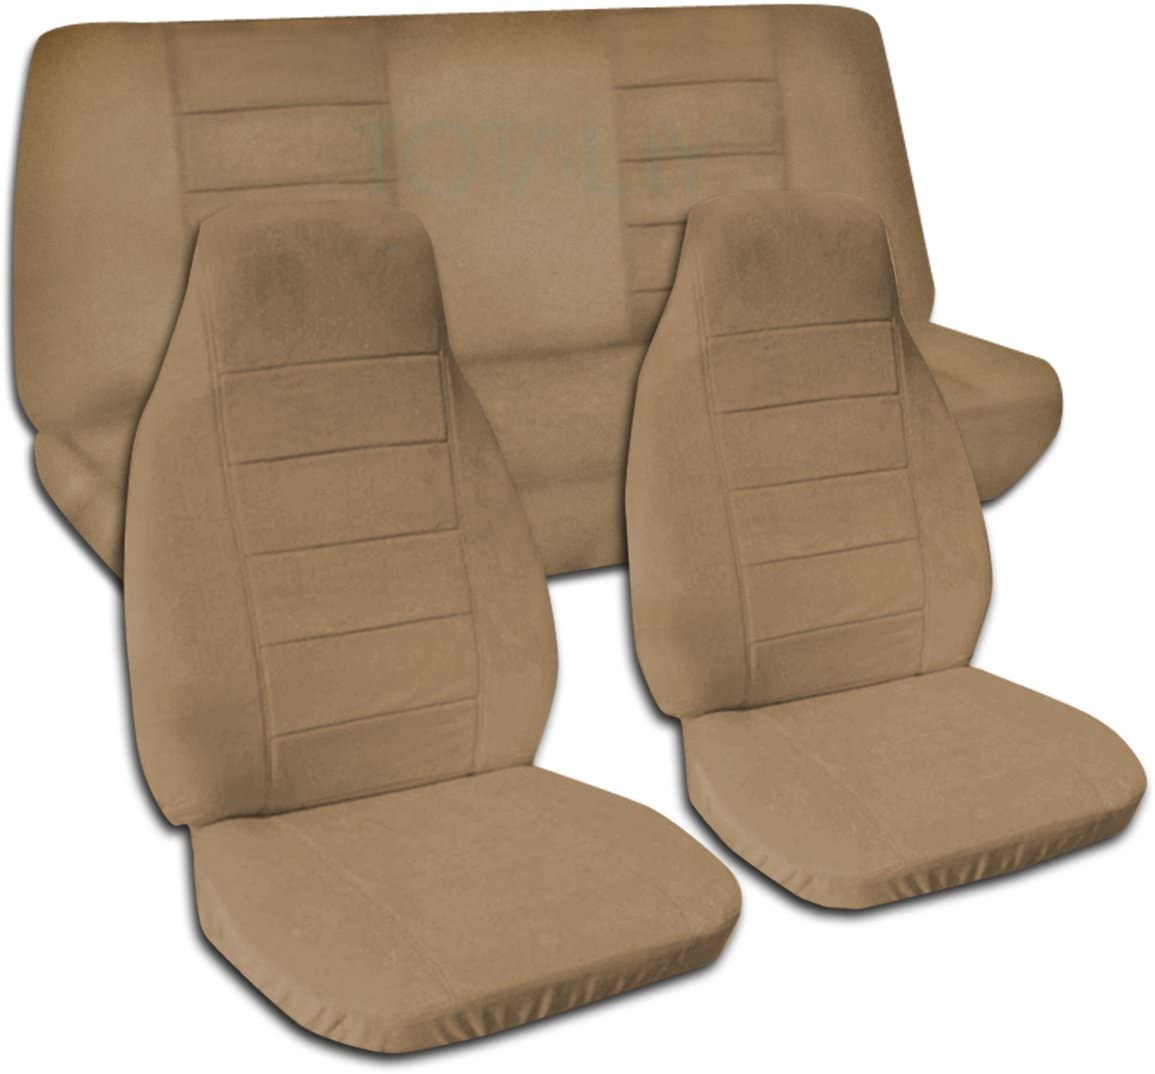 Totally Covers Compatible with 1997-2006 Jeep Wrangler TJ Solid Color Seat Covers: Brown - Full Set: Front & Rear (22 Colors) 2-Door Complete Back Bench